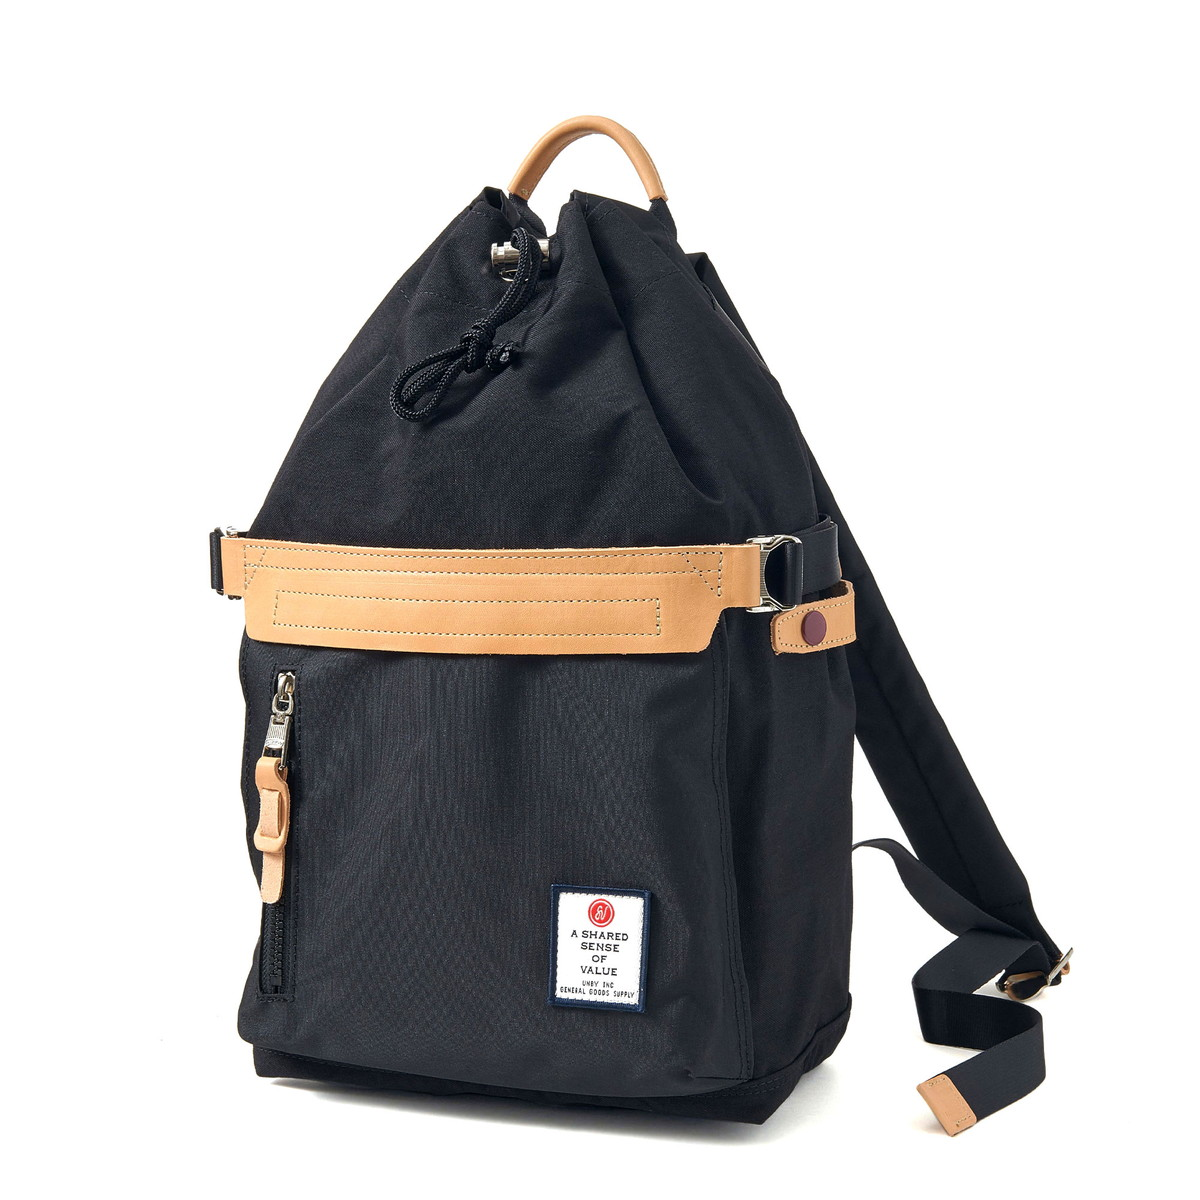 AS2OV (アッソブ) HI DENSITY CORDURA NYLON BON SAC 091431